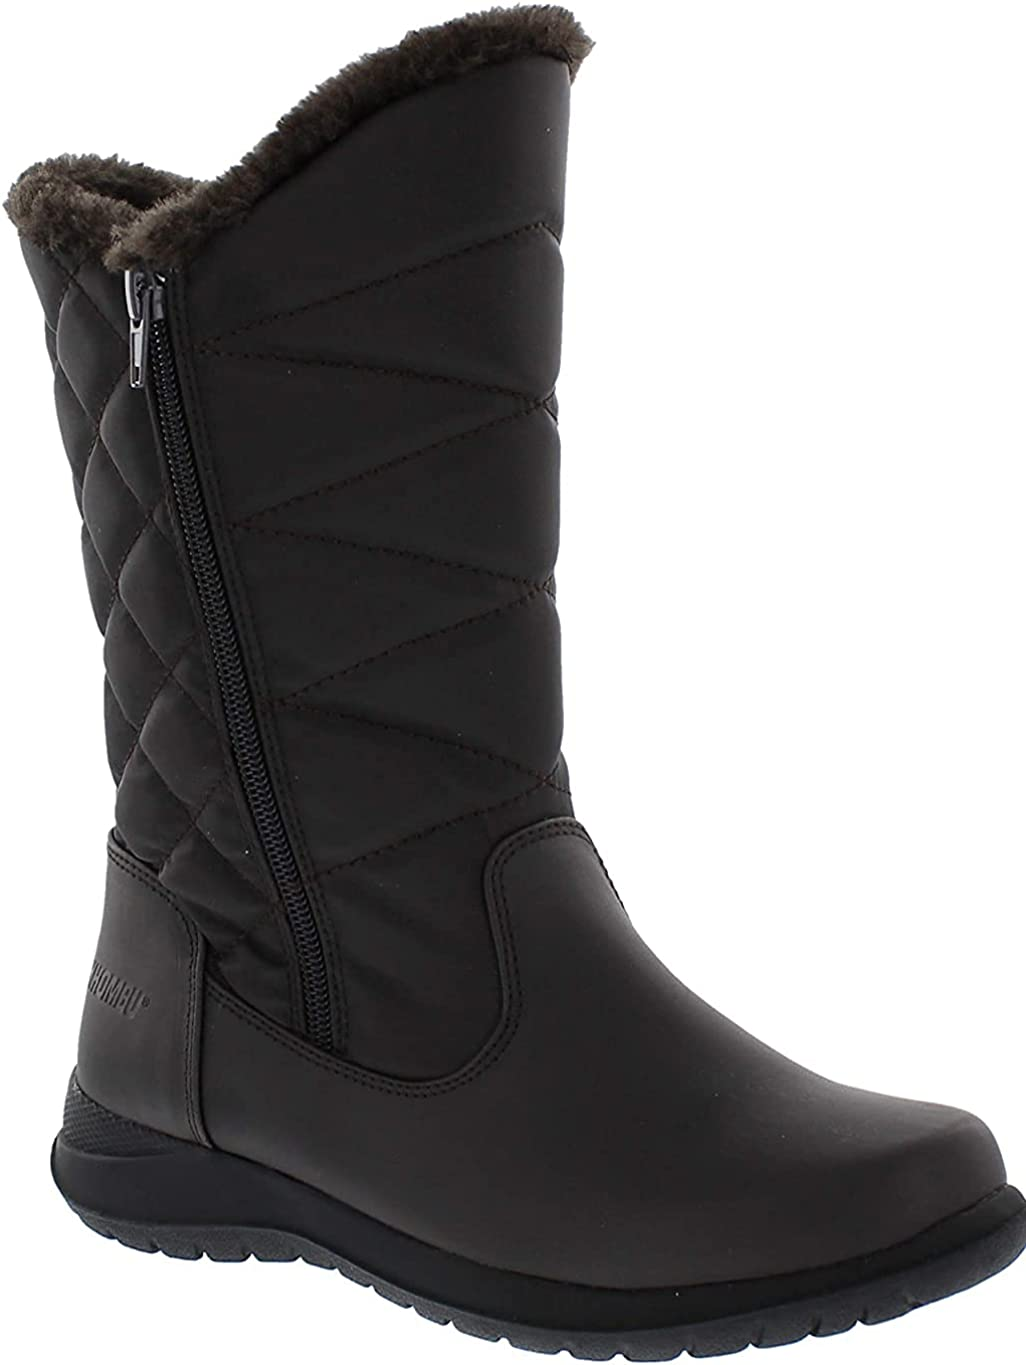 Khombu Women's Cold Weather Carly with Dual Zipper Closures Winter Boots